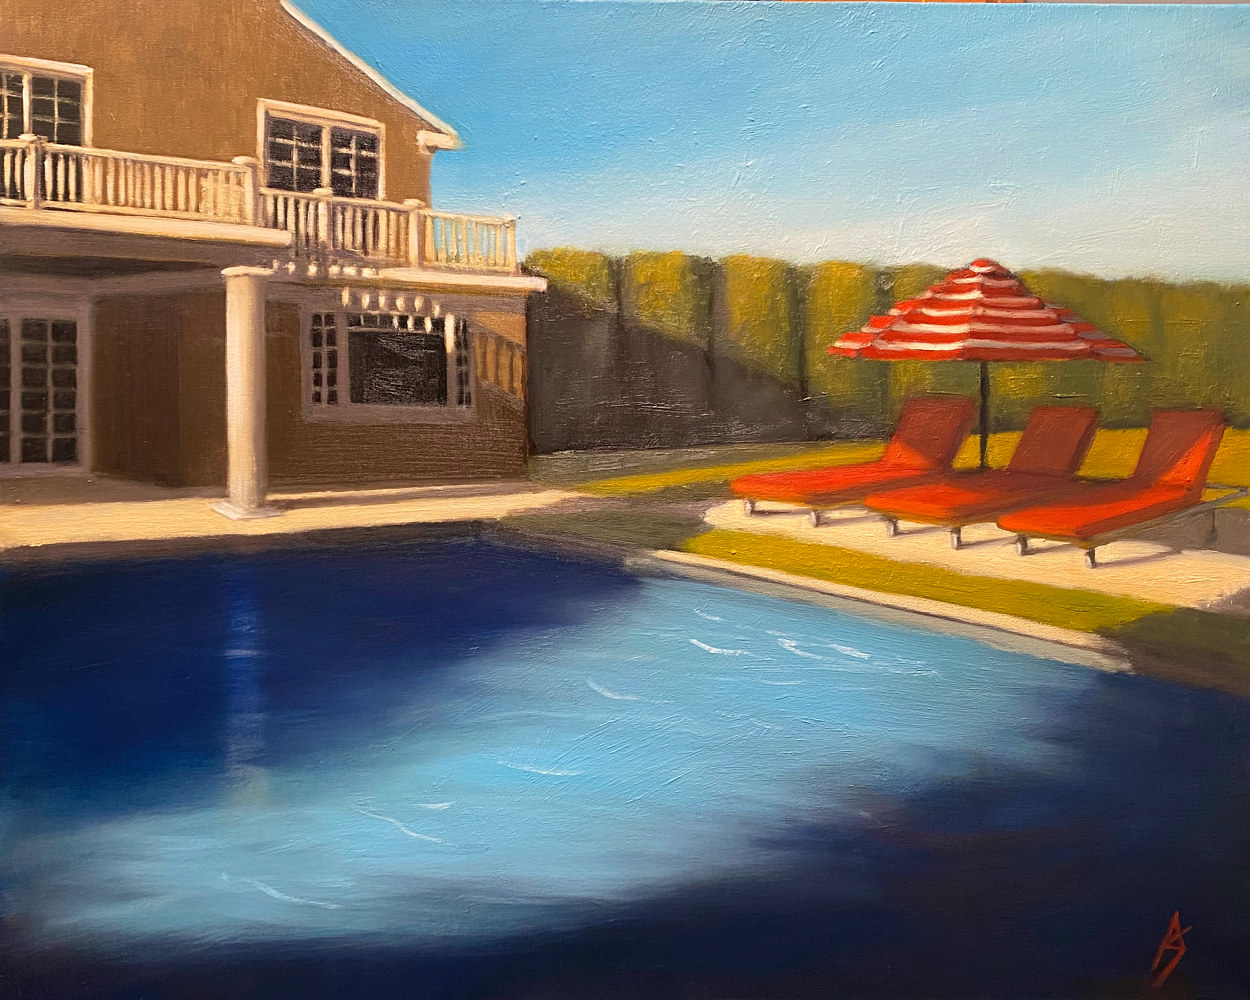 Oil painting Suburban Landscape 8 by Alex Selkowitz